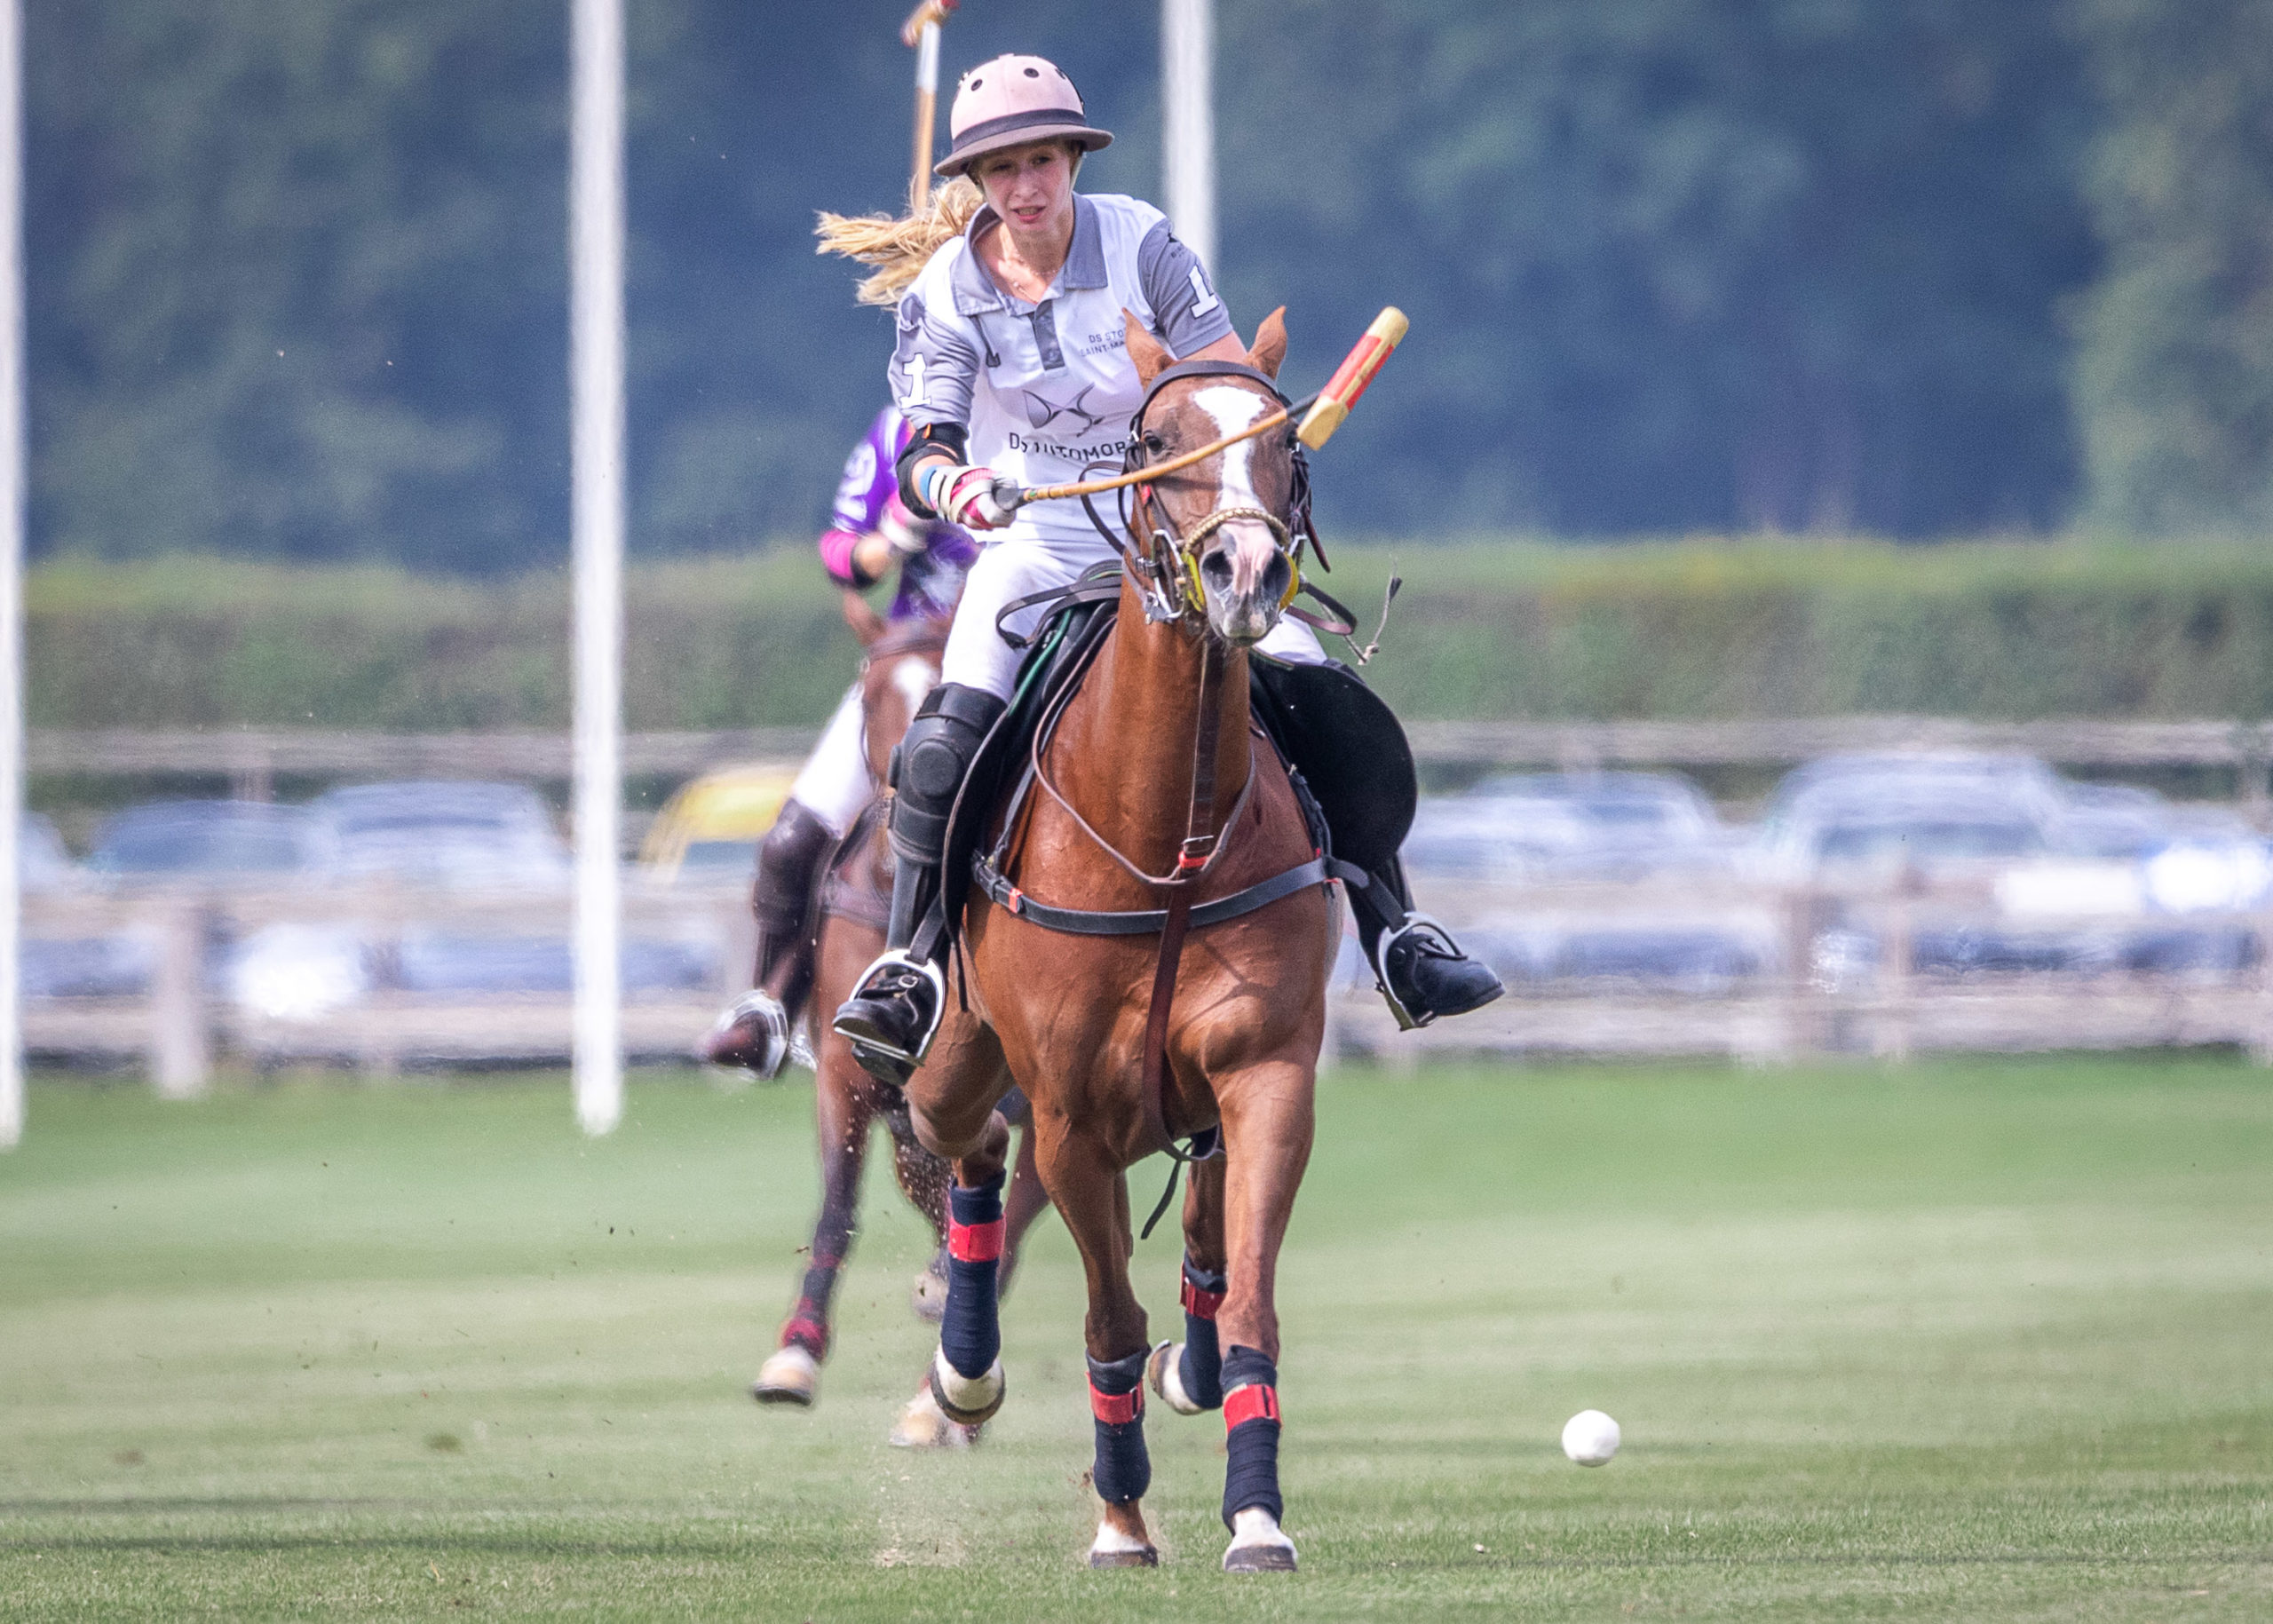 polo park zurich takes 2021 french women's open win